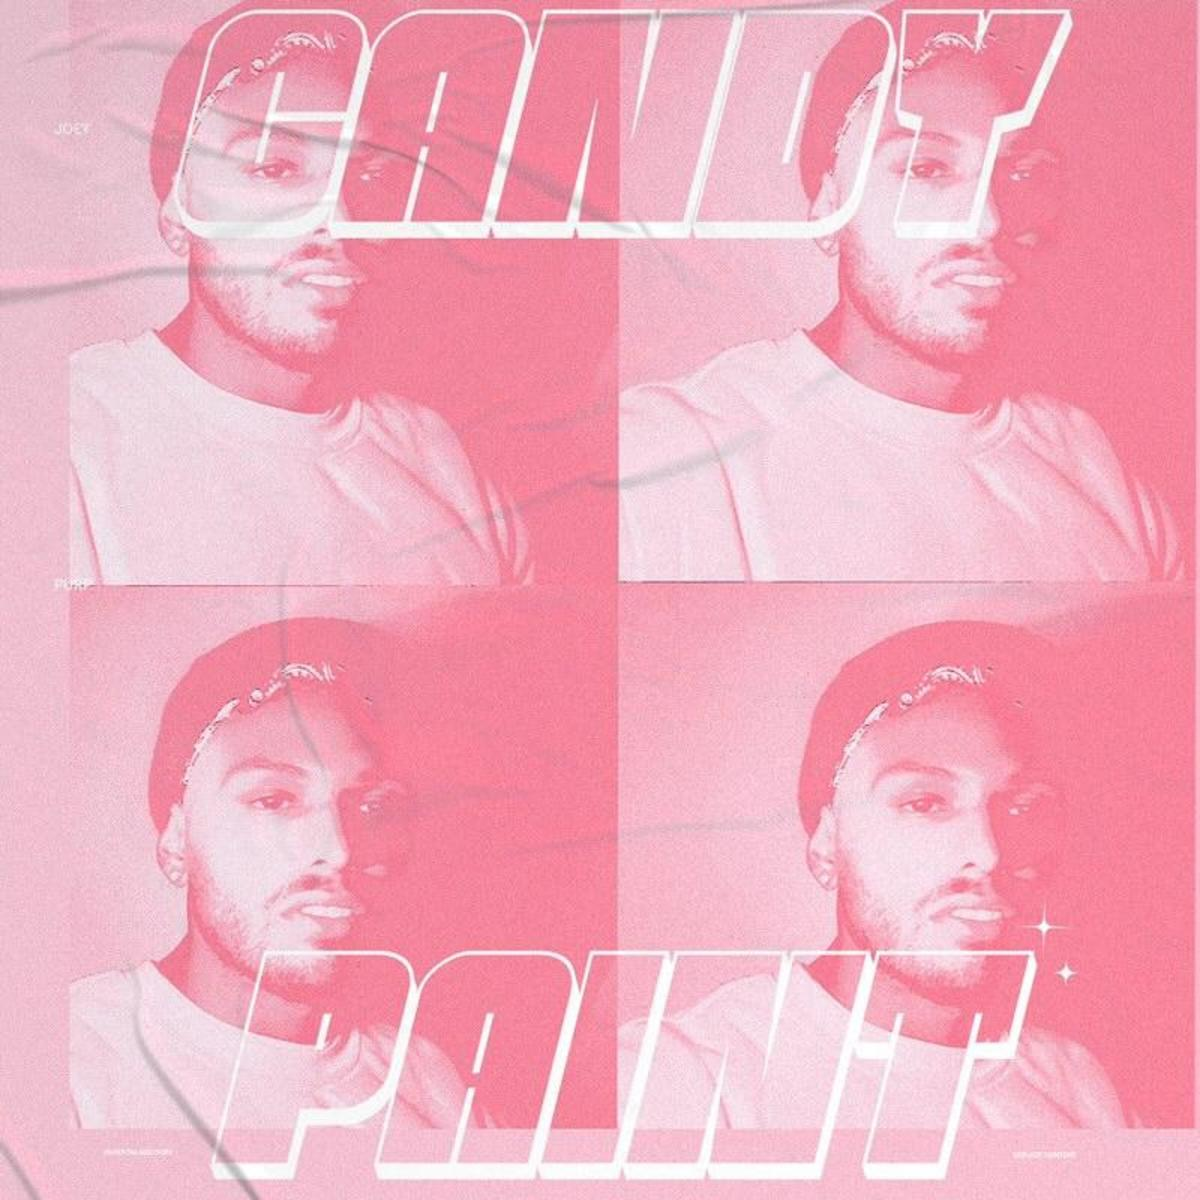 Joey Purp - CANDYPAINT